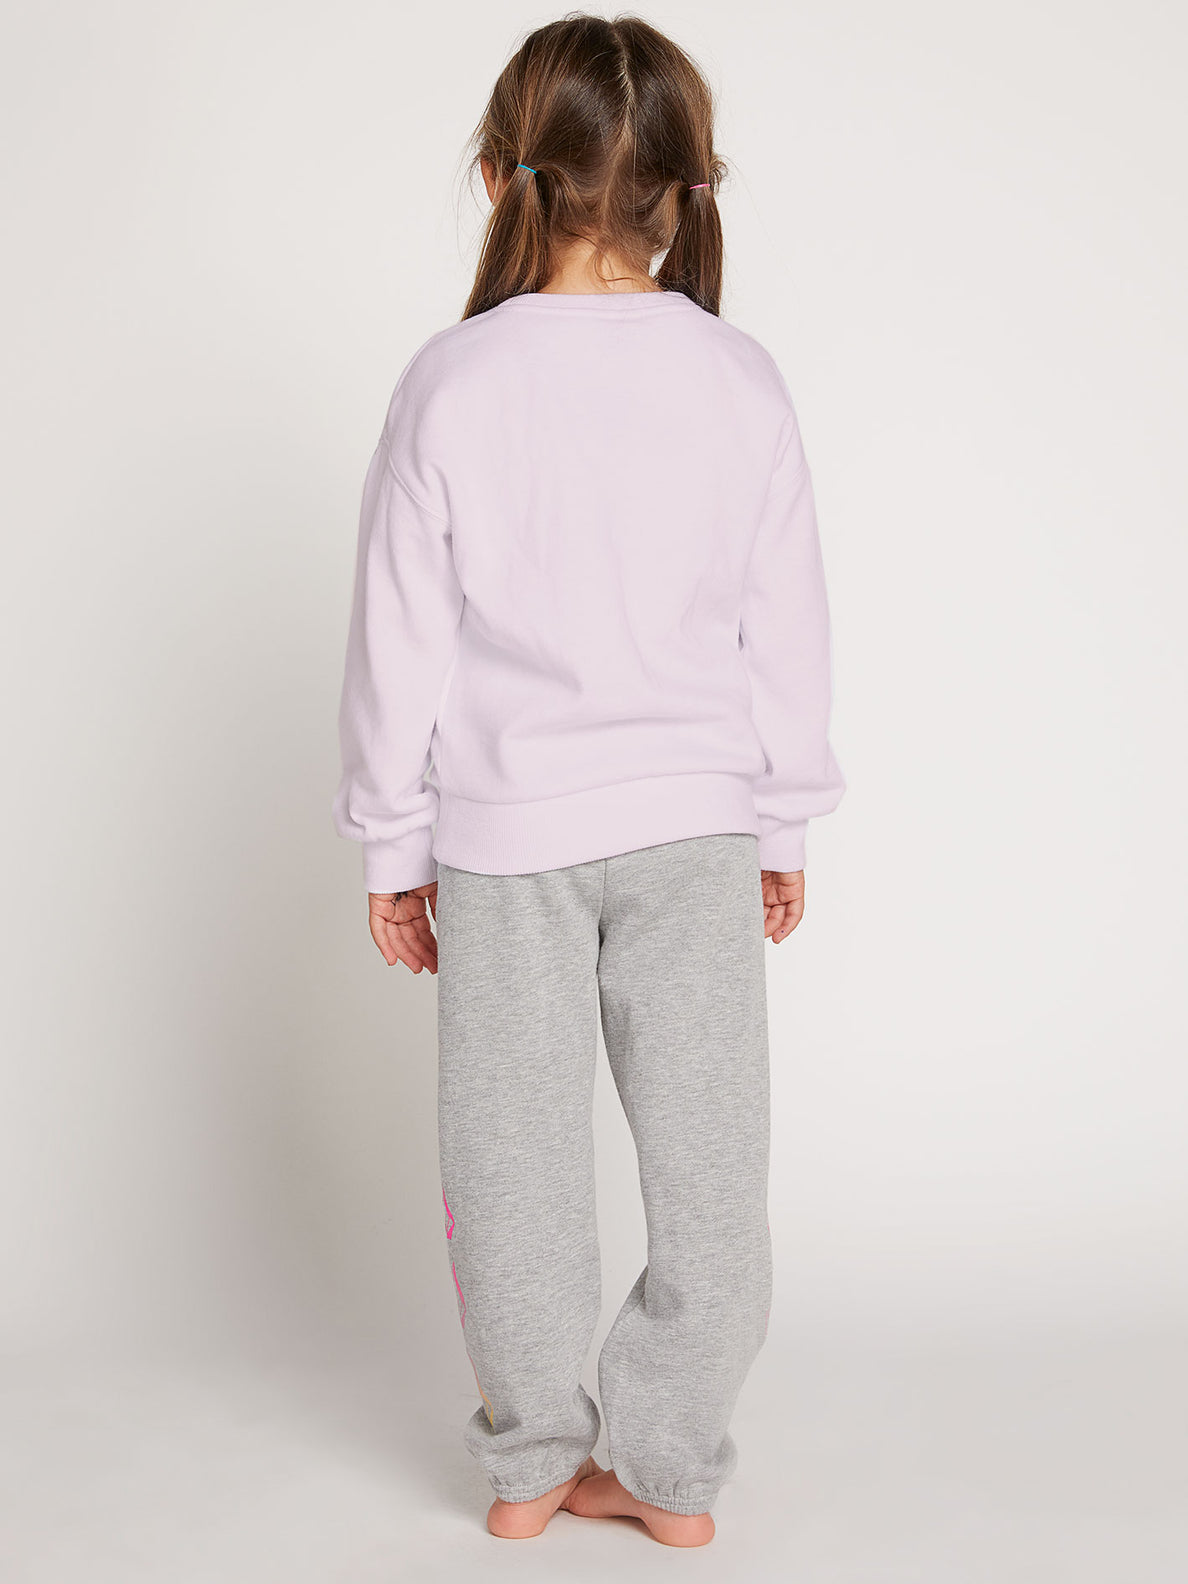 Little Girls Darting Traffic Crew Sweatshirt In Blush Pink, Back View